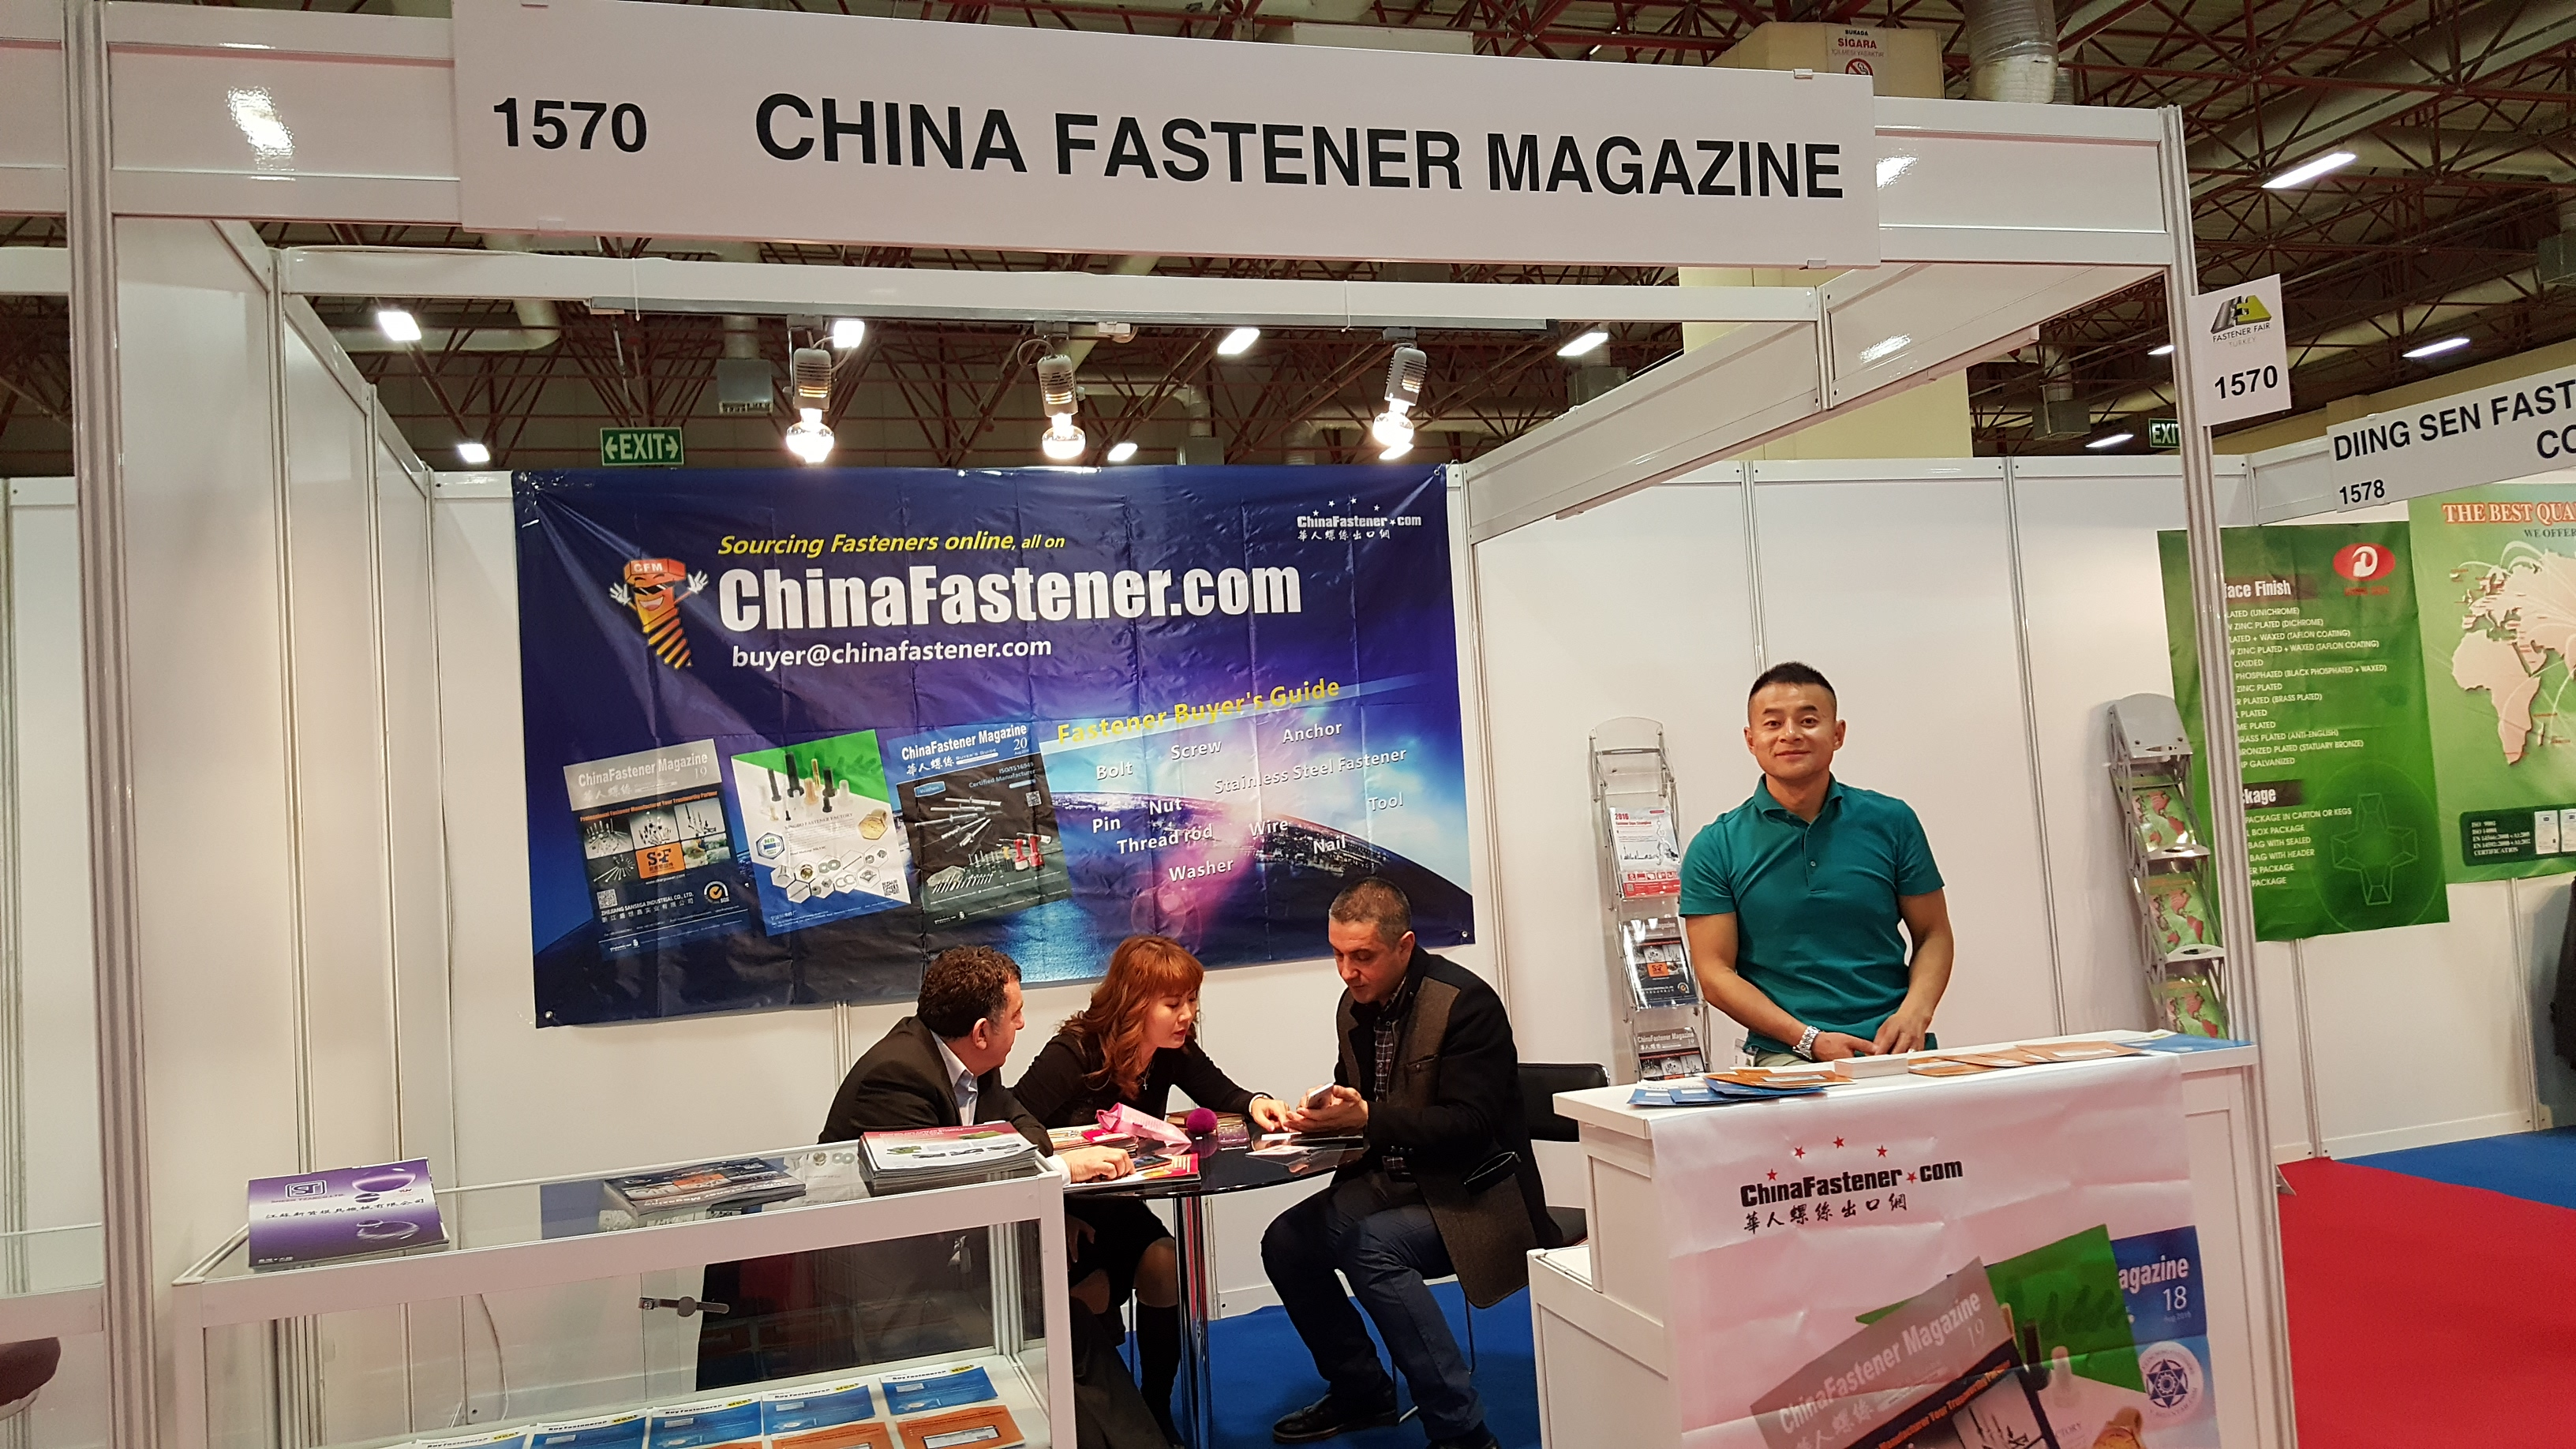 CFM in Fastener Fair Turkey, brings you the first hand report in the smoke of terror attack